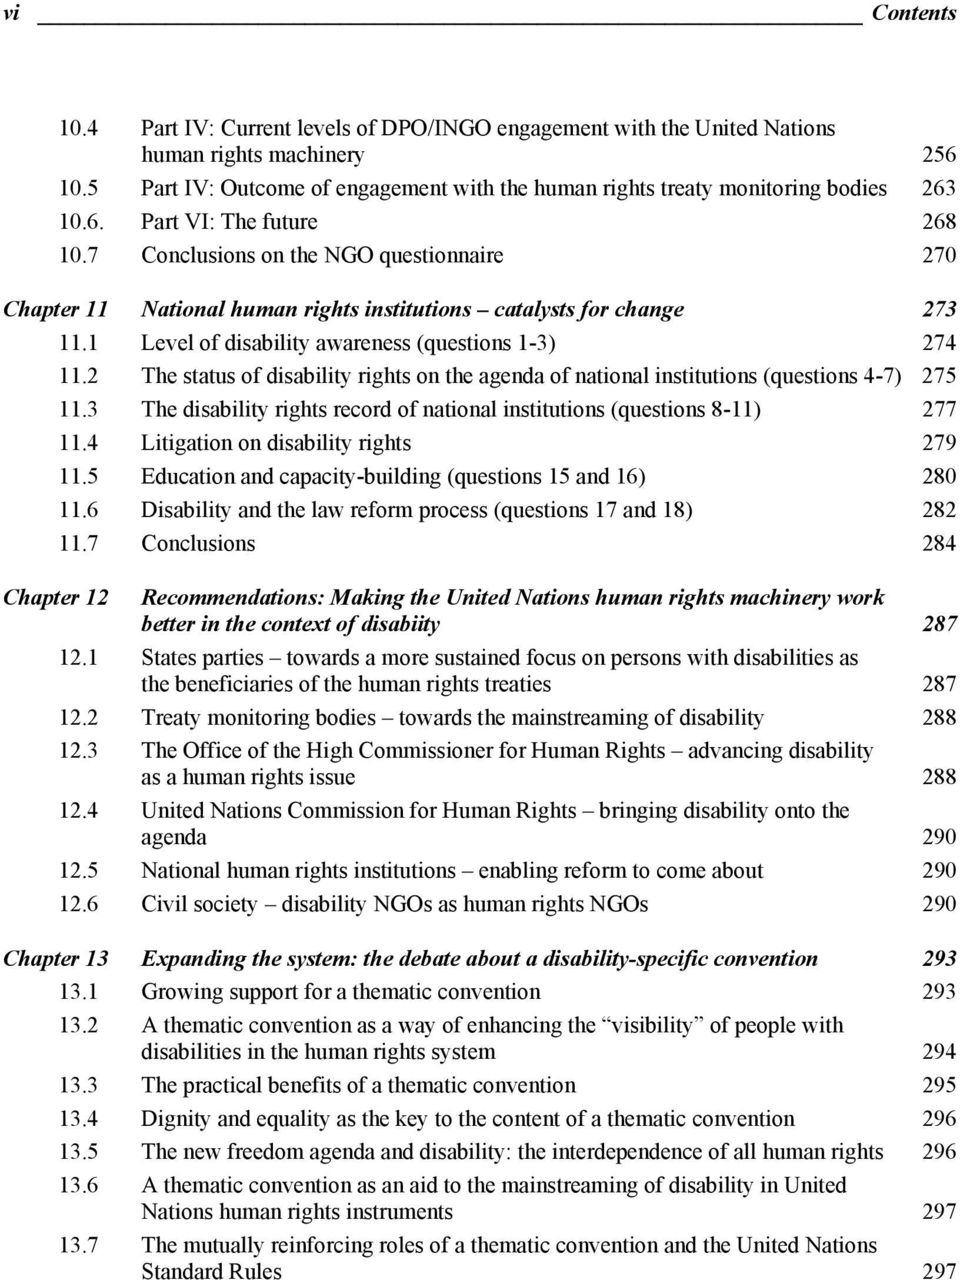 7 Conclusions on the NGO questionnaire 270 Chapter 11 National human rights institutions catalysts for change 273 11.1 Level of disability awareness (questions 1-3) 274 11.